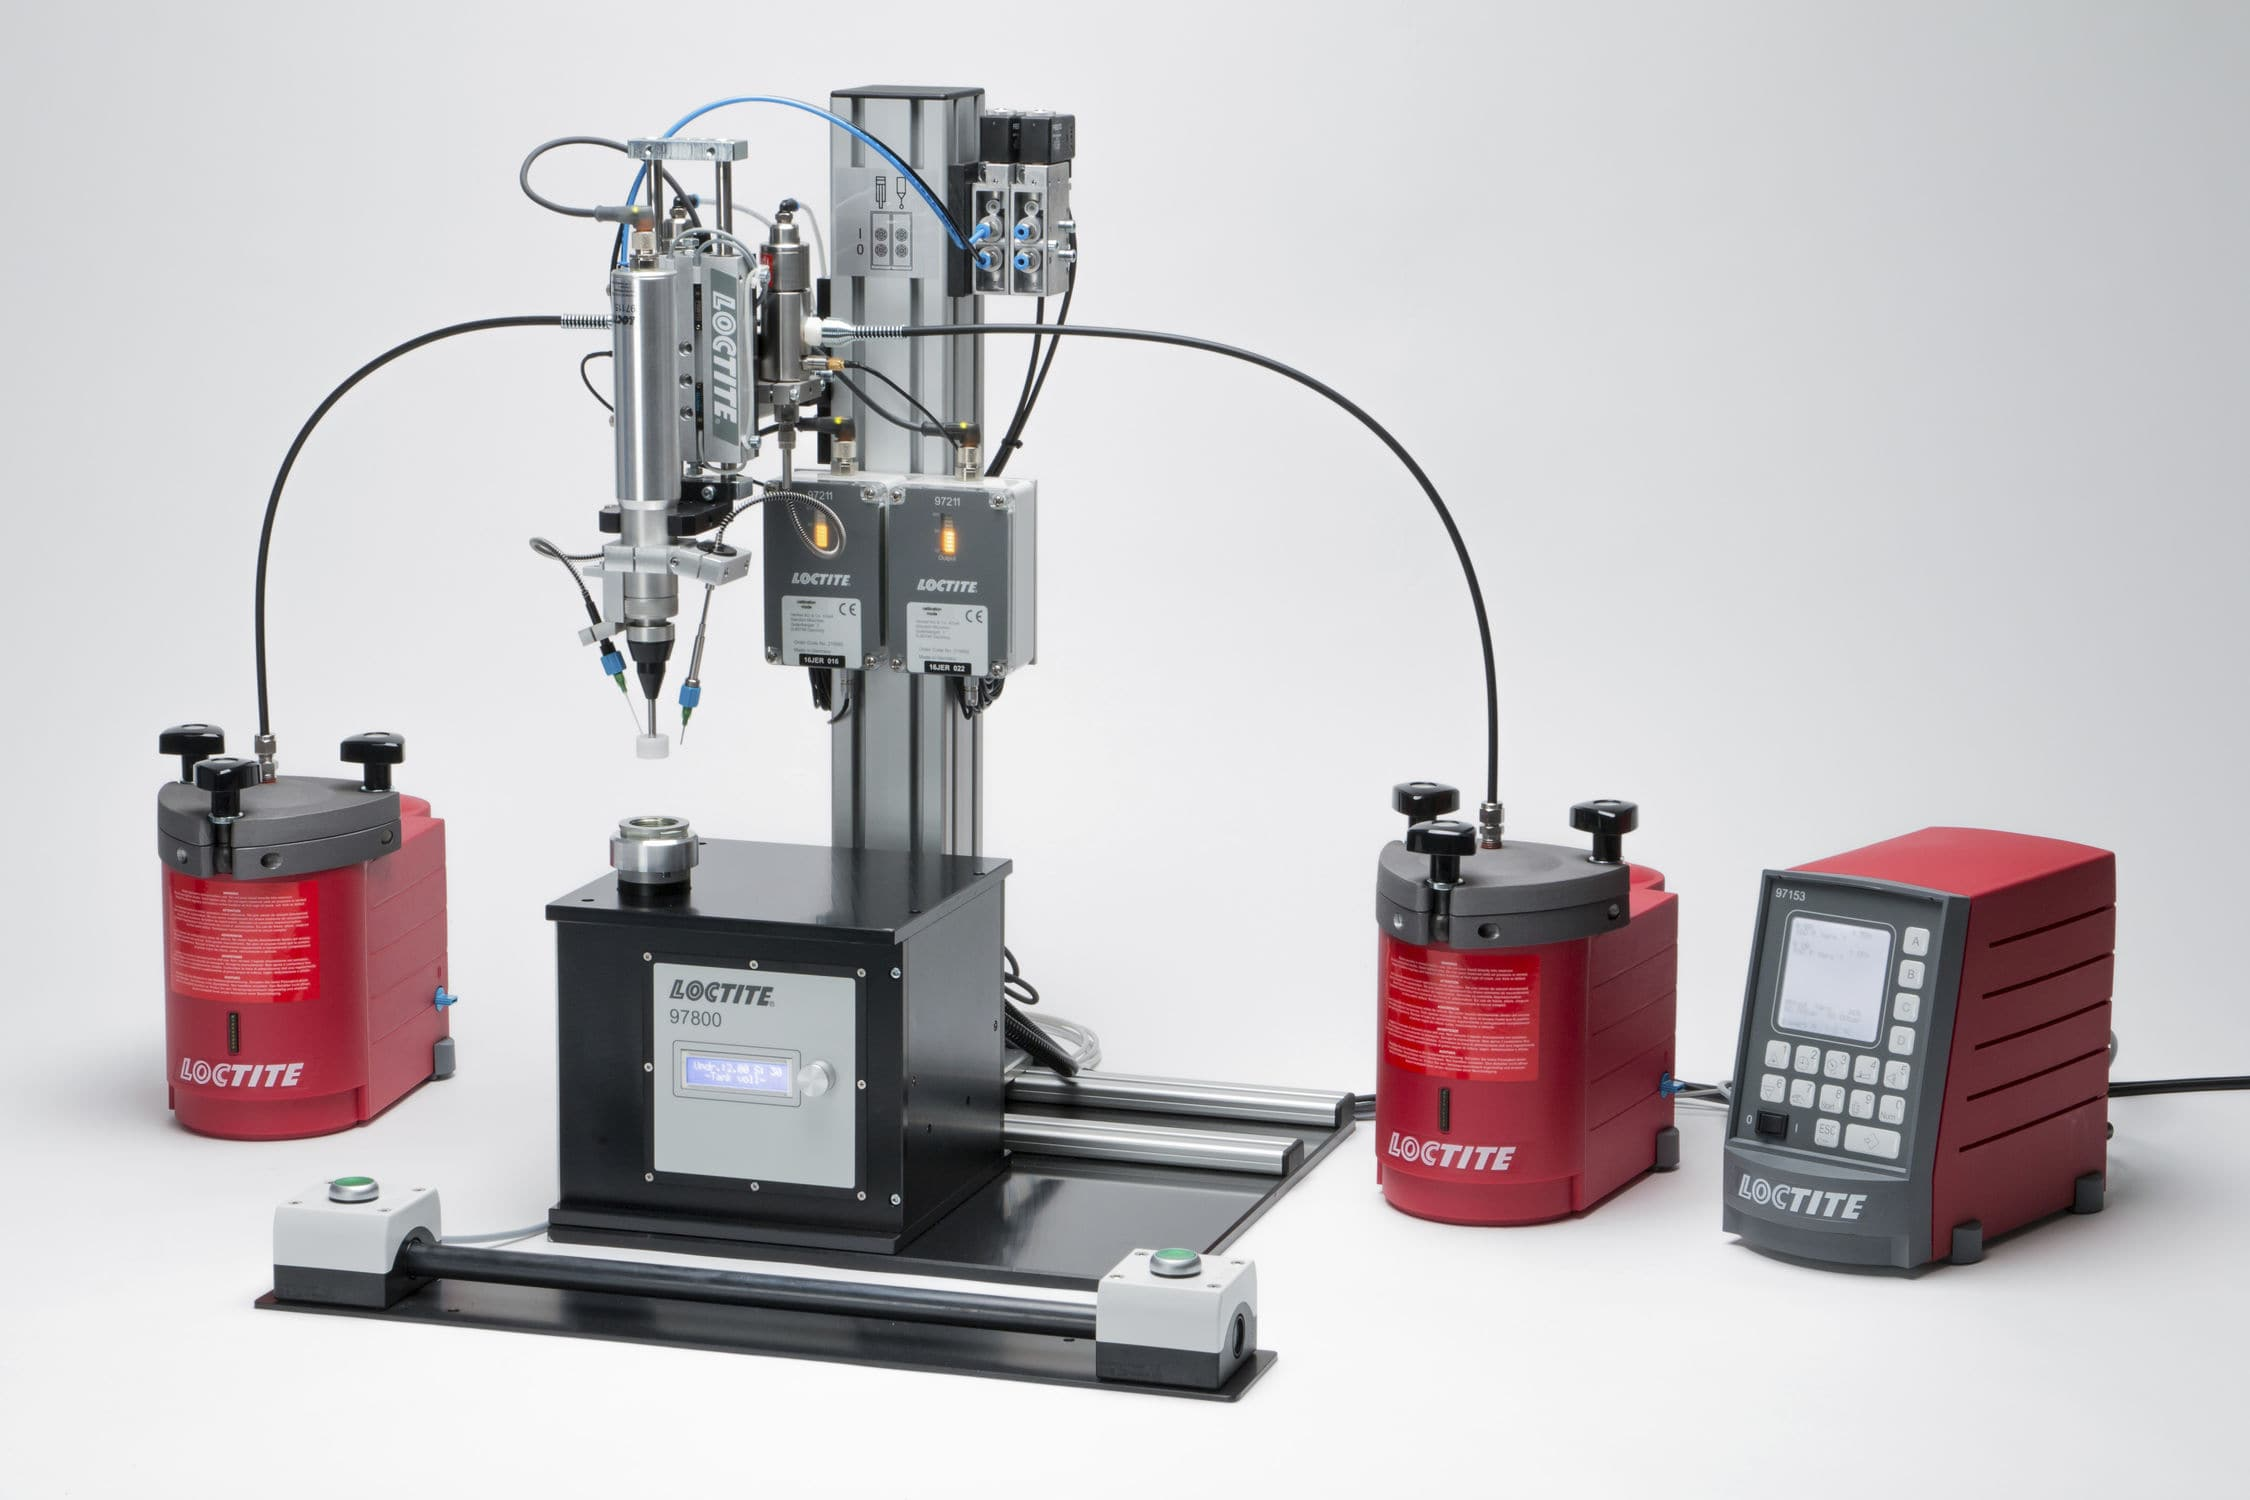 Liquid dispensing system - Rotary Table Dispensing System - Henkel LOCTITE - adhesive / automatic / high-precision